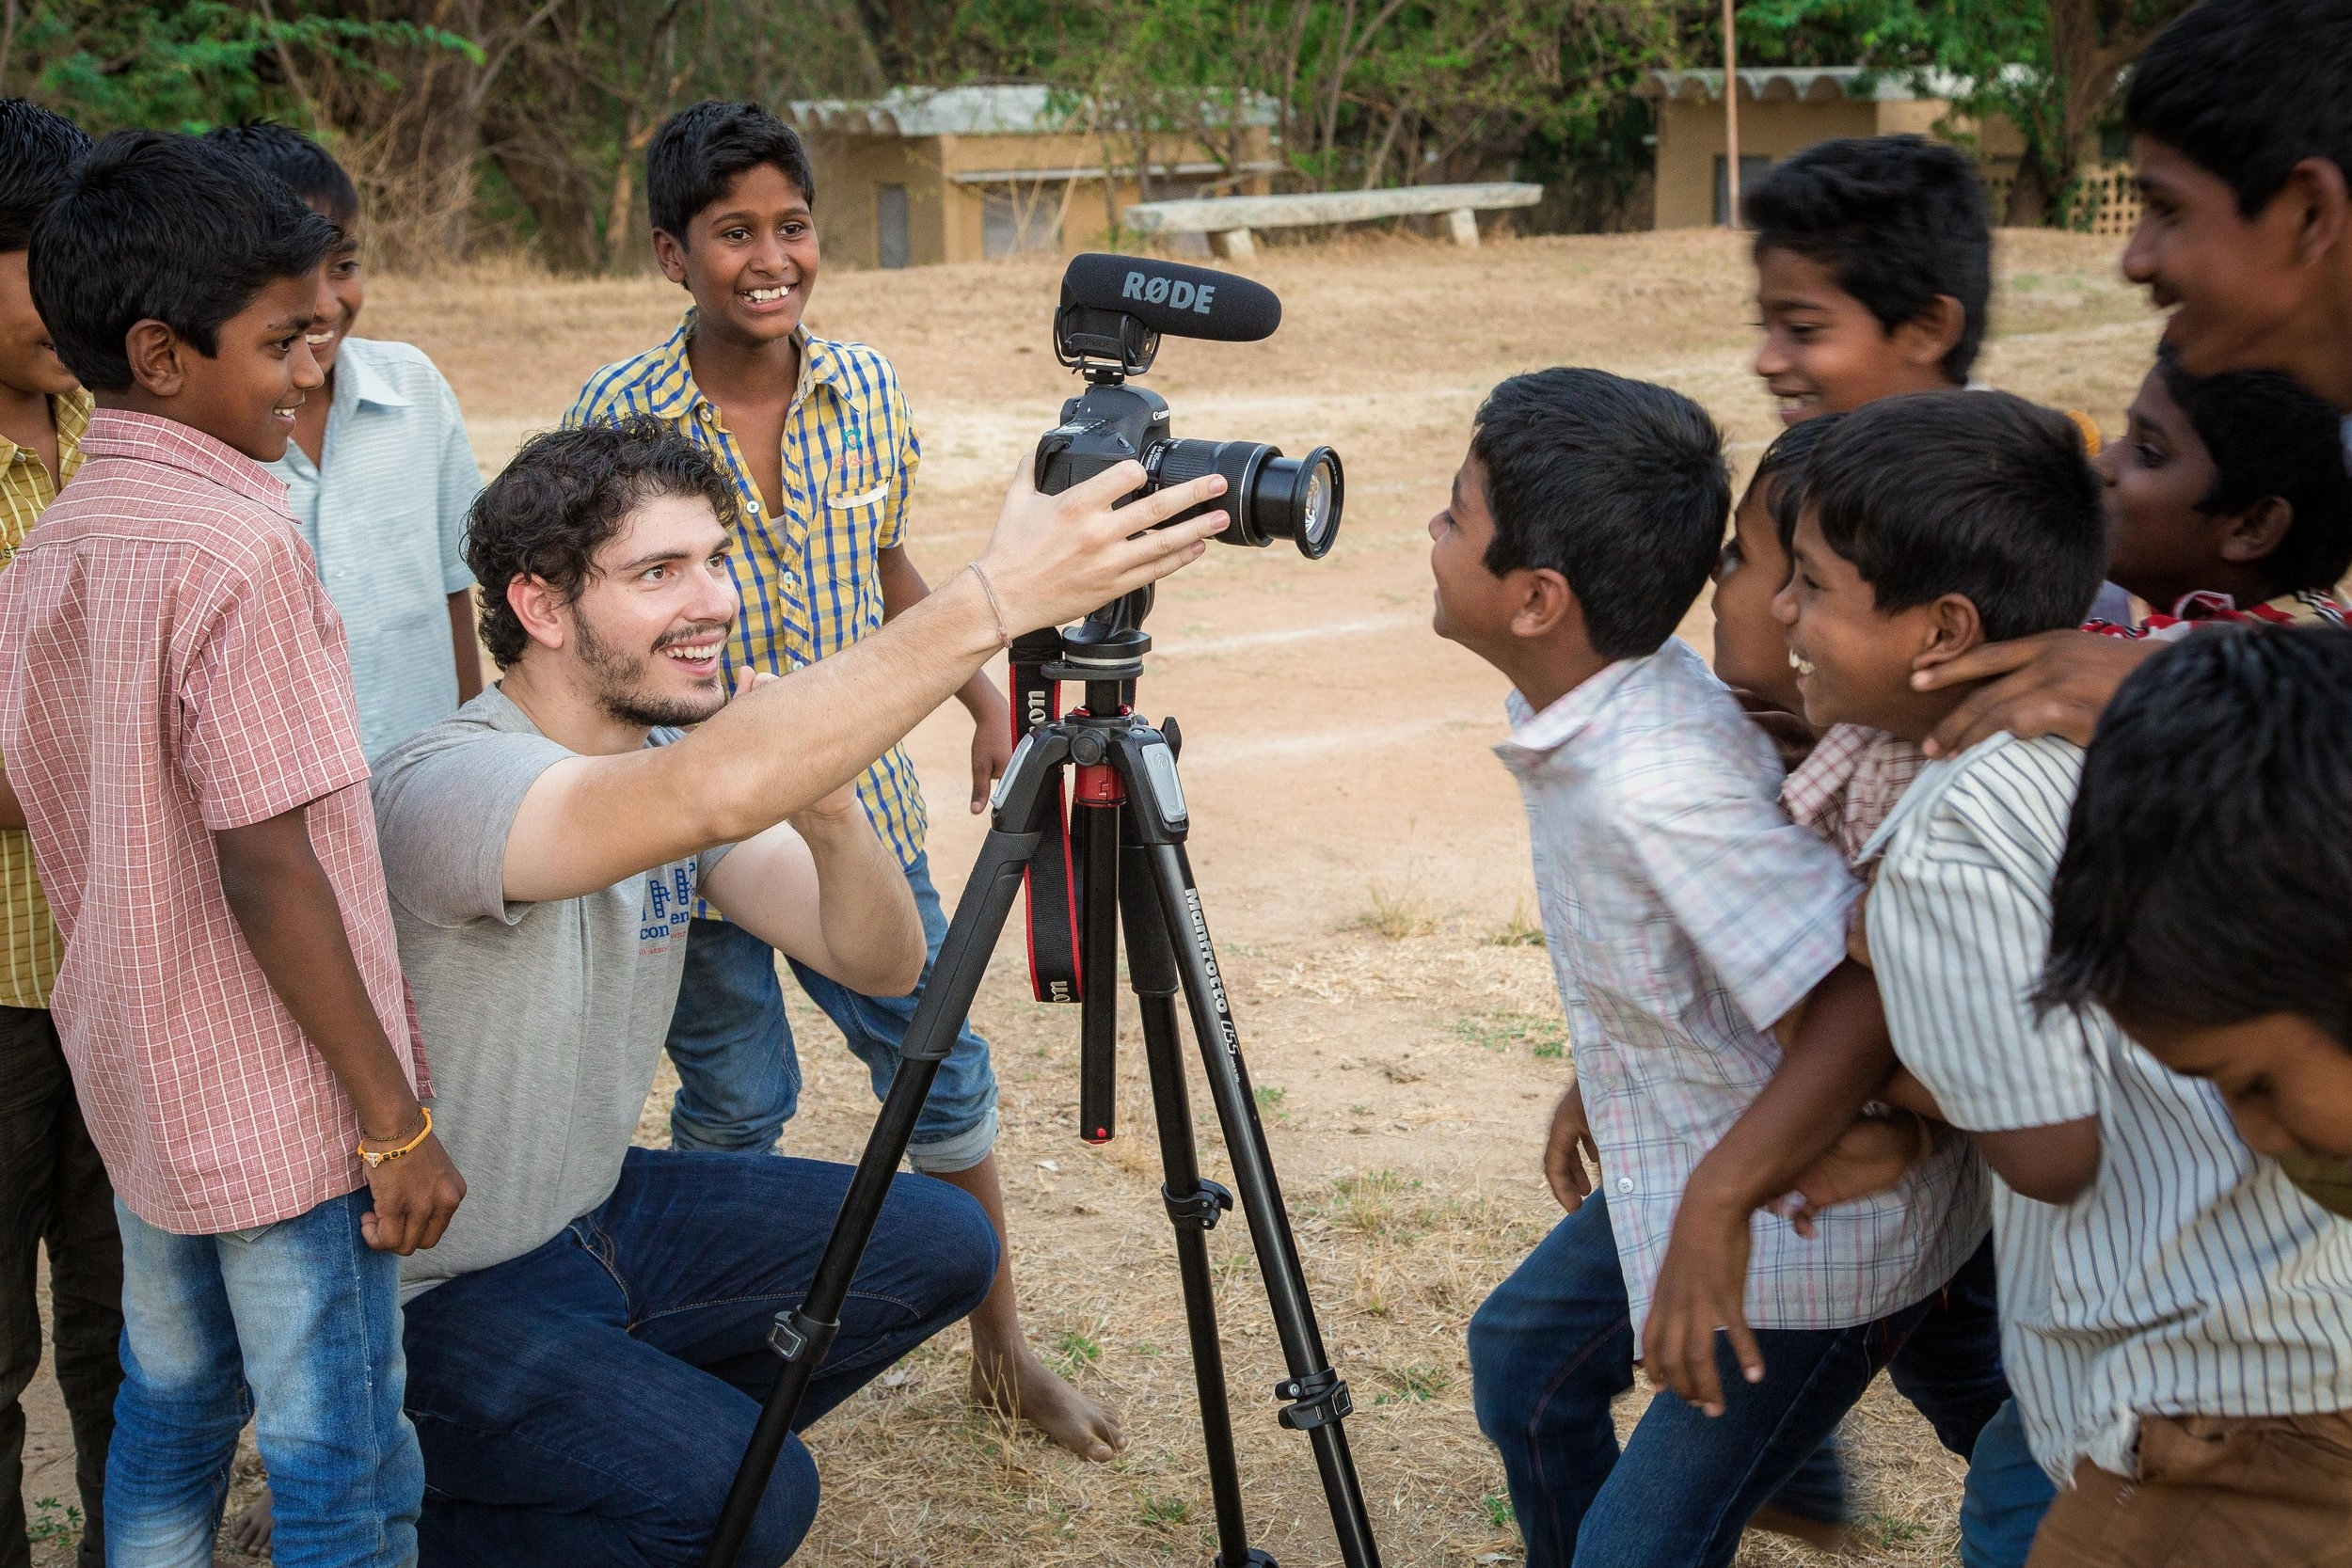 On location for the American India Foundation and RIVER in Rishi Valley, India 2016 Picture courtesy of Prashant Panjiar / The American India Foundation